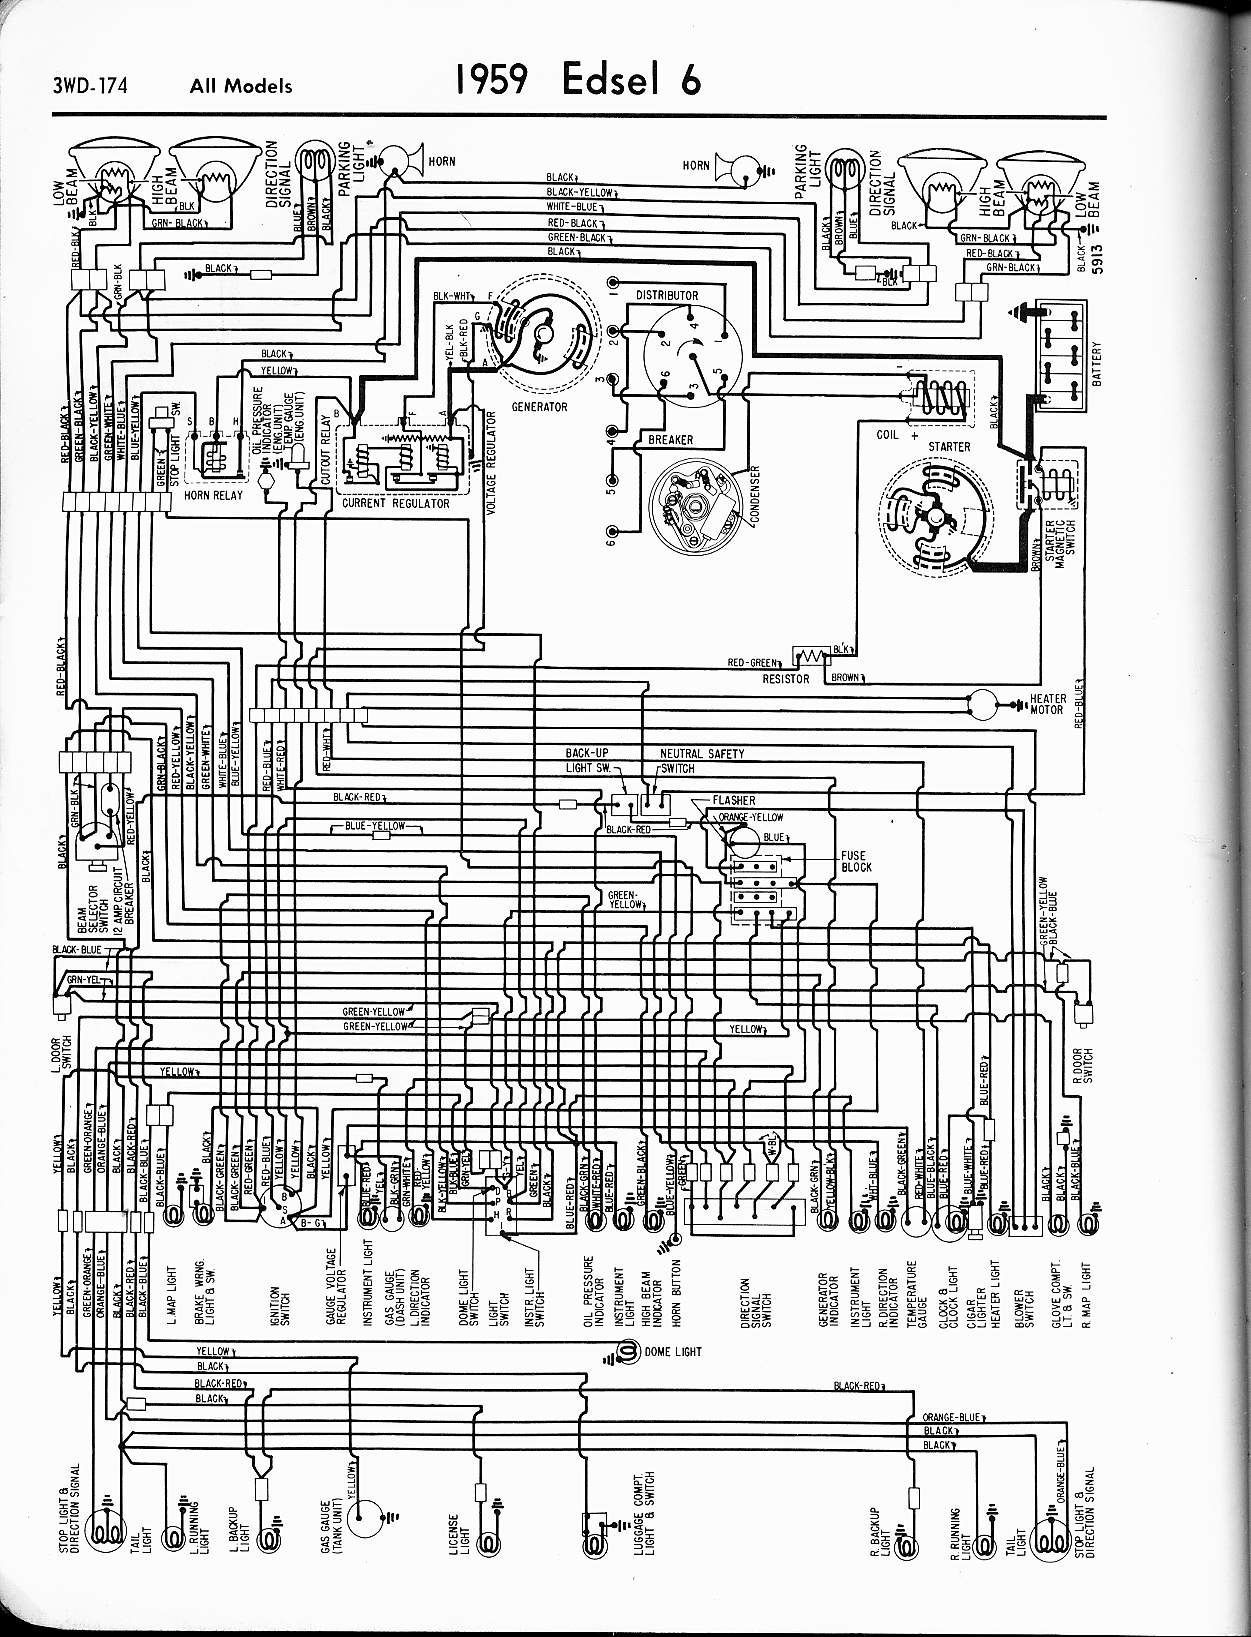 edsel wiring diagramsindex of wiring diagrams for edsel 1958 edsel ranger and pacer · 1958 edsel corsair and citation · 1959 edsel six